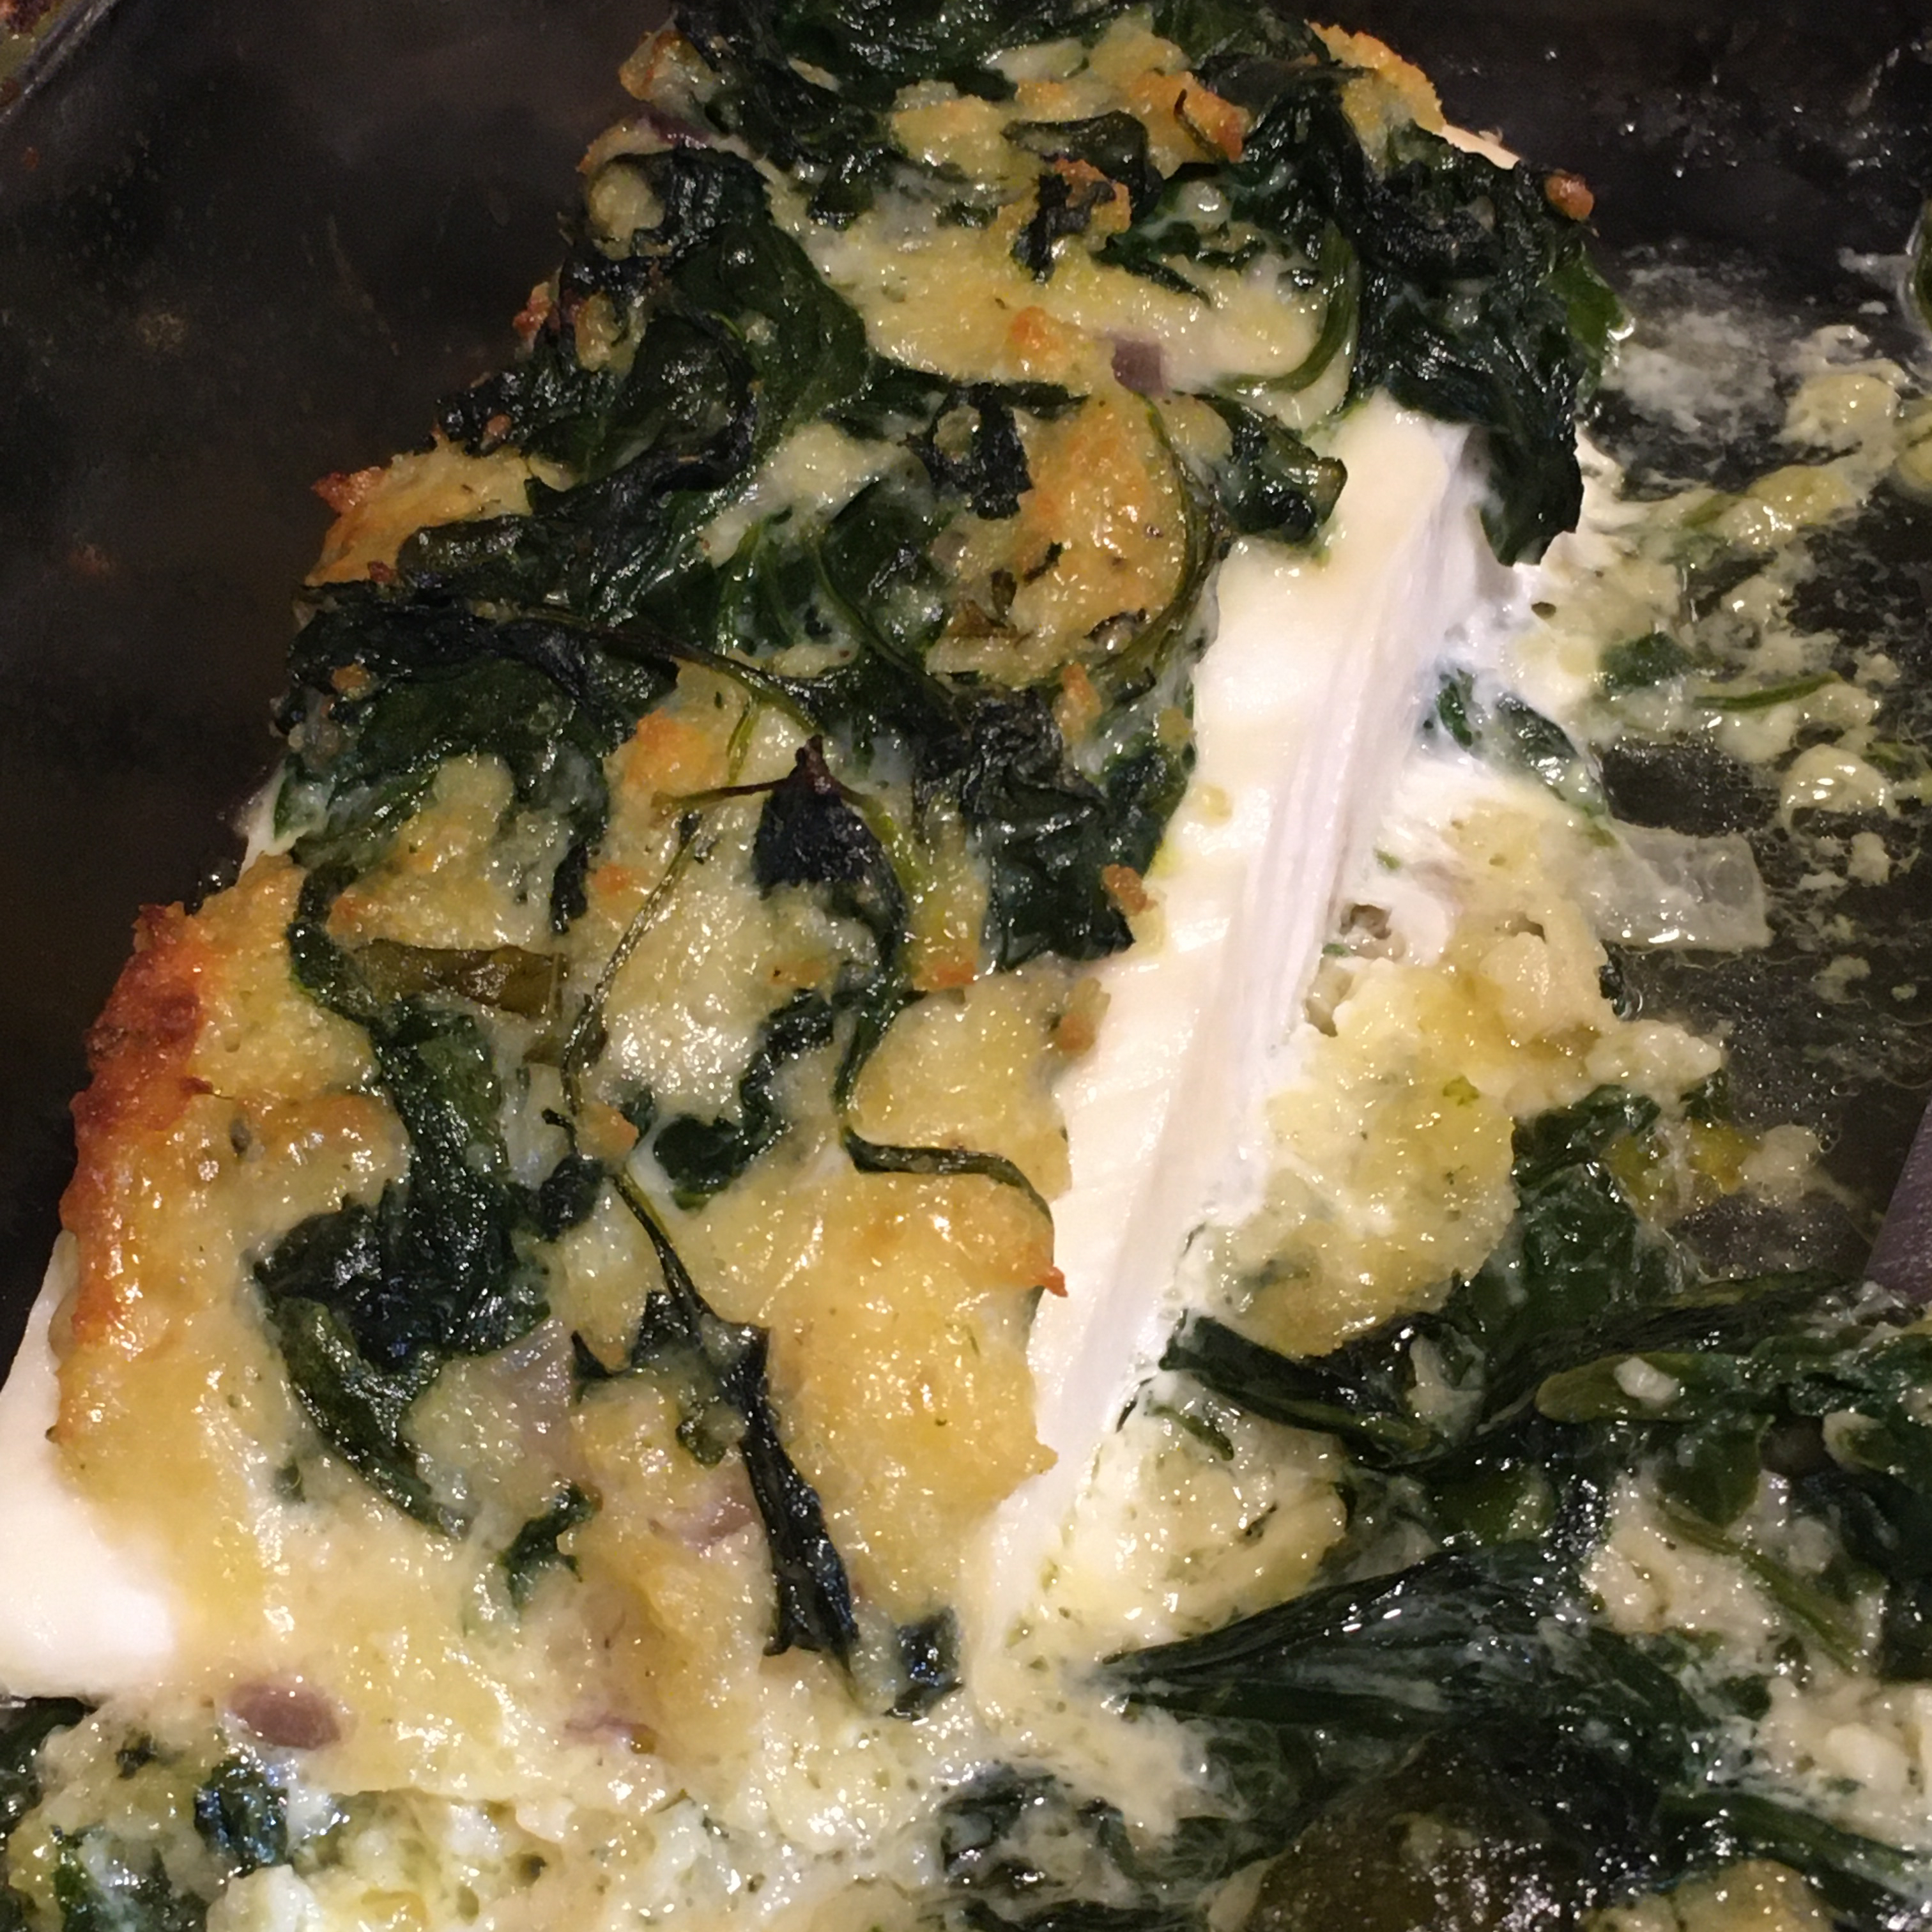 Aunt Carol's Spinach and Fish Bake